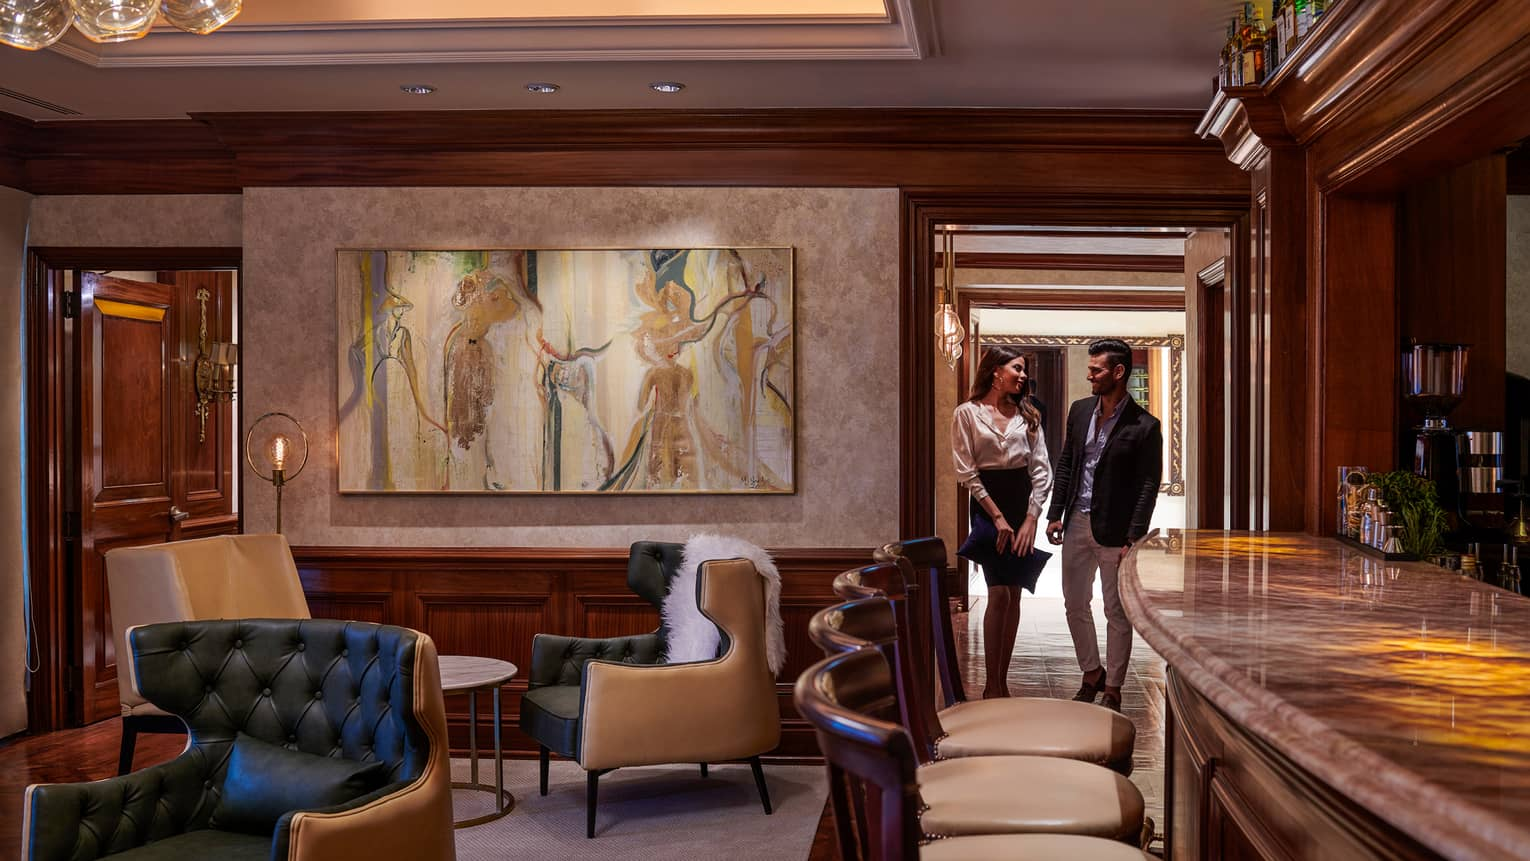 Woman and man walk through door into cocktail lounge with large painting, leather chairs